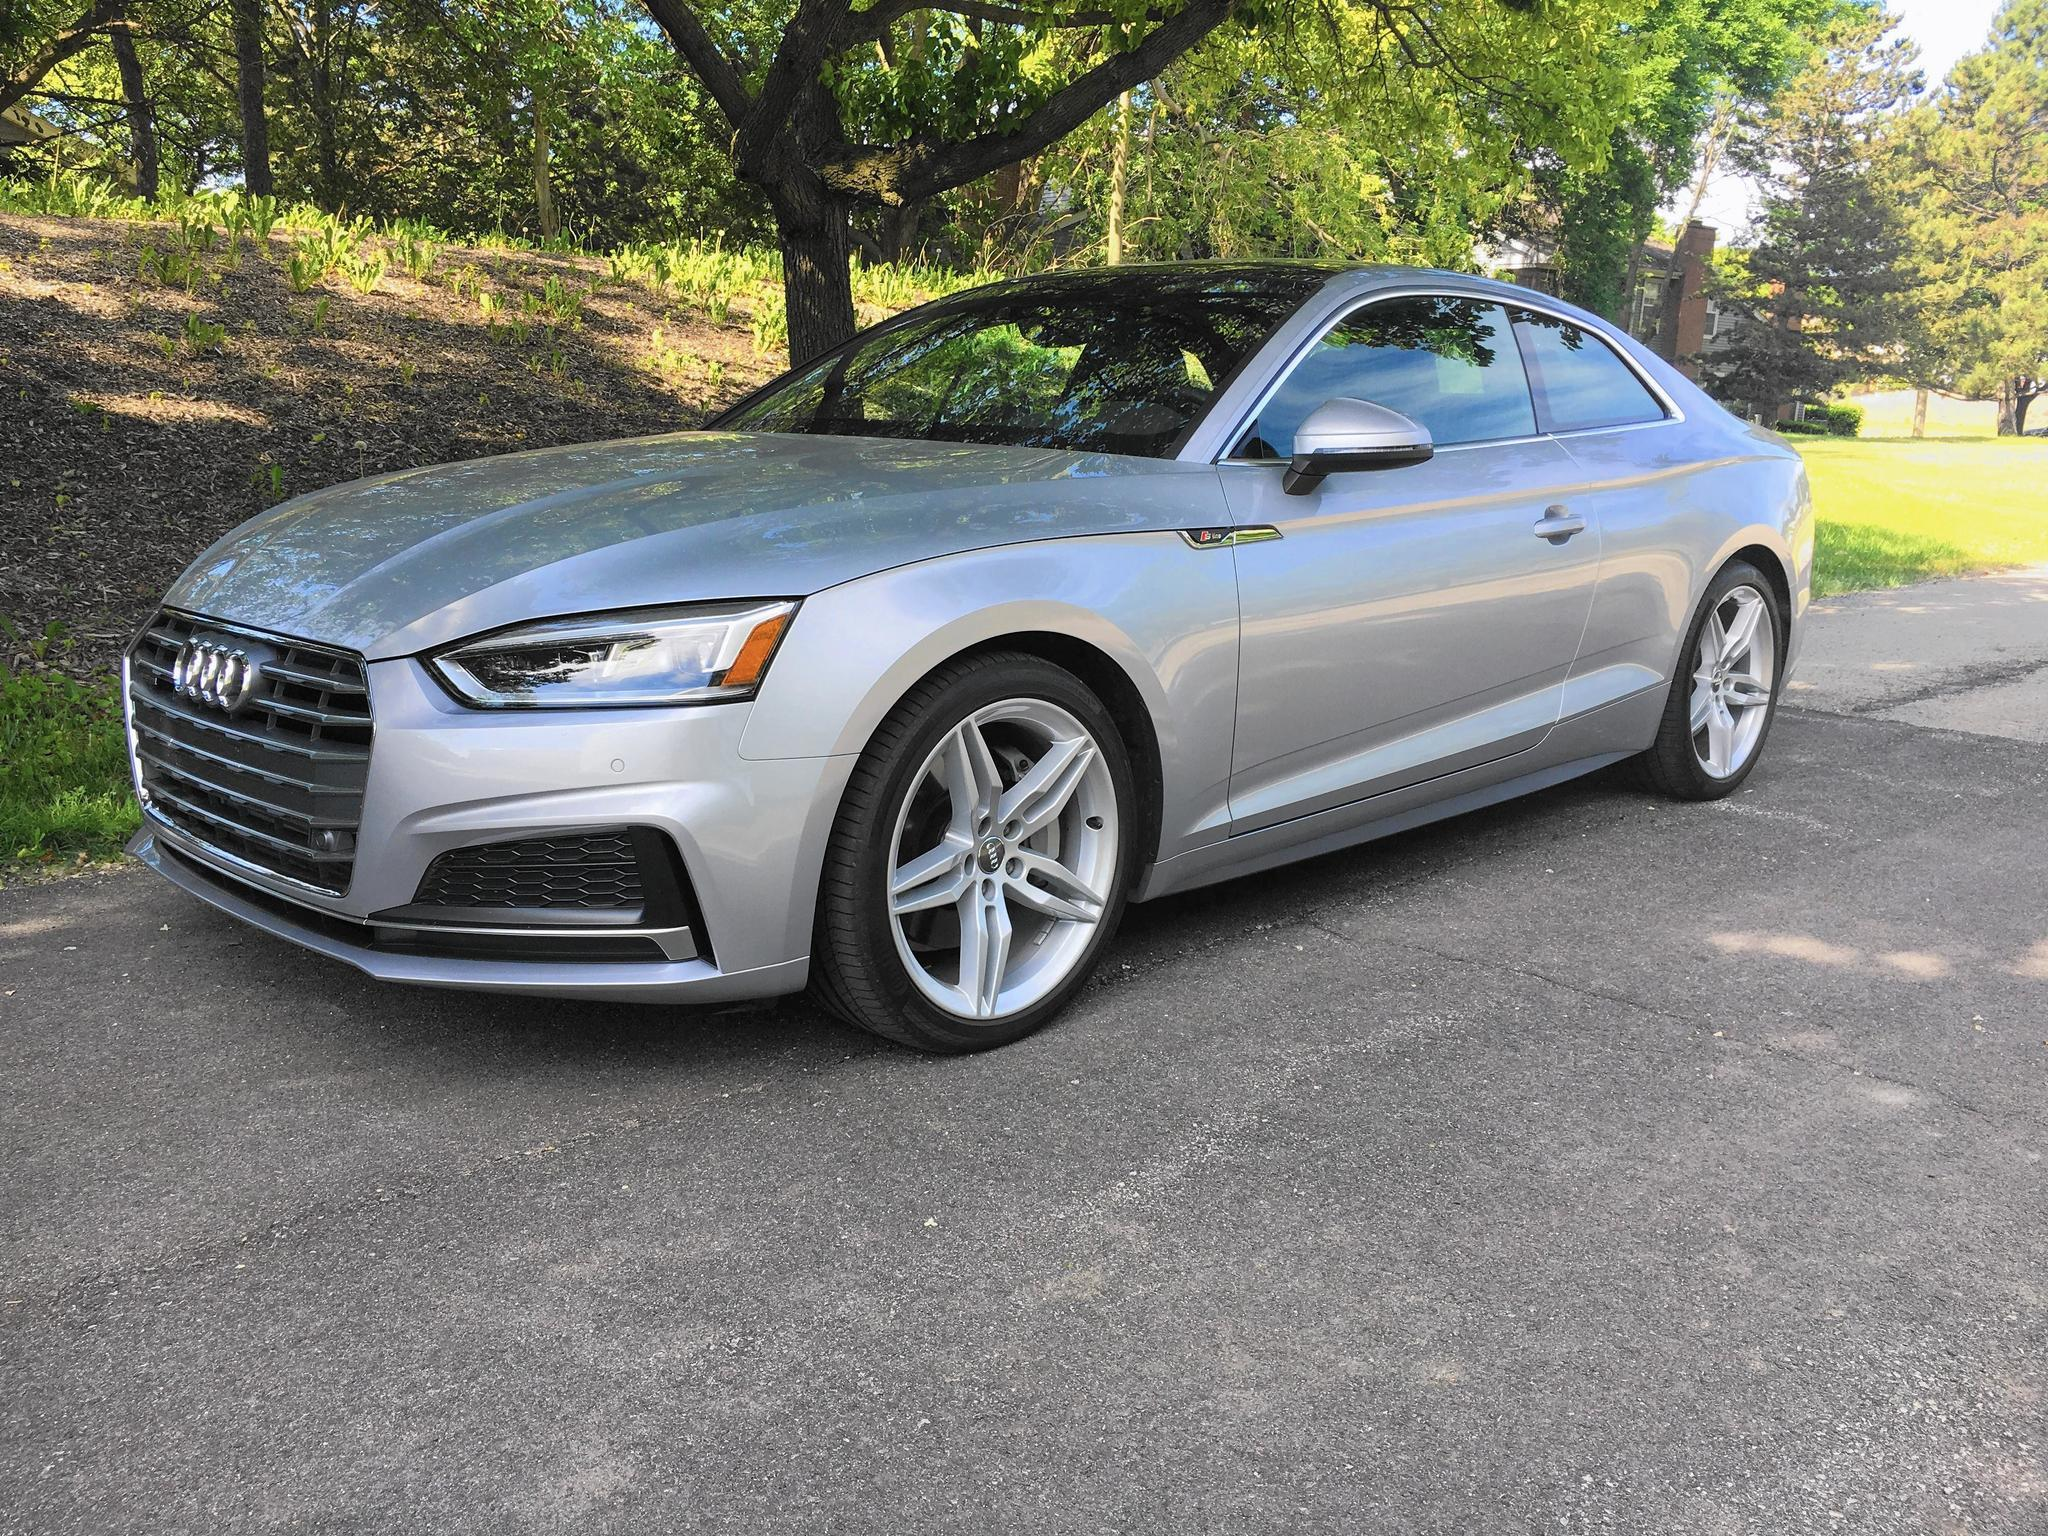 2018 audi a5 coupe is a good getaway car chicago tribune. Black Bedroom Furniture Sets. Home Design Ideas